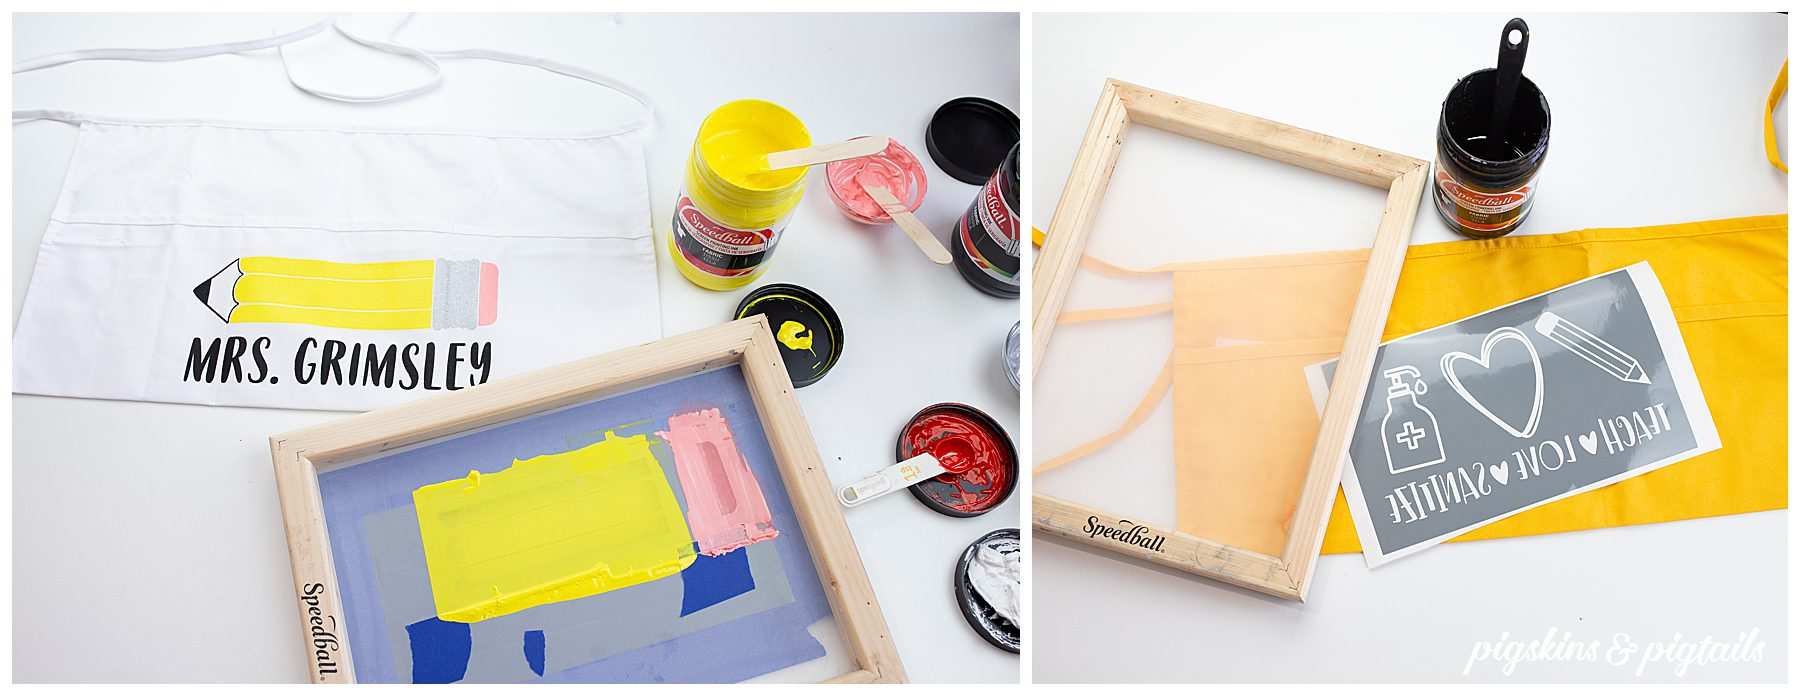 screen printing project idea for teachers